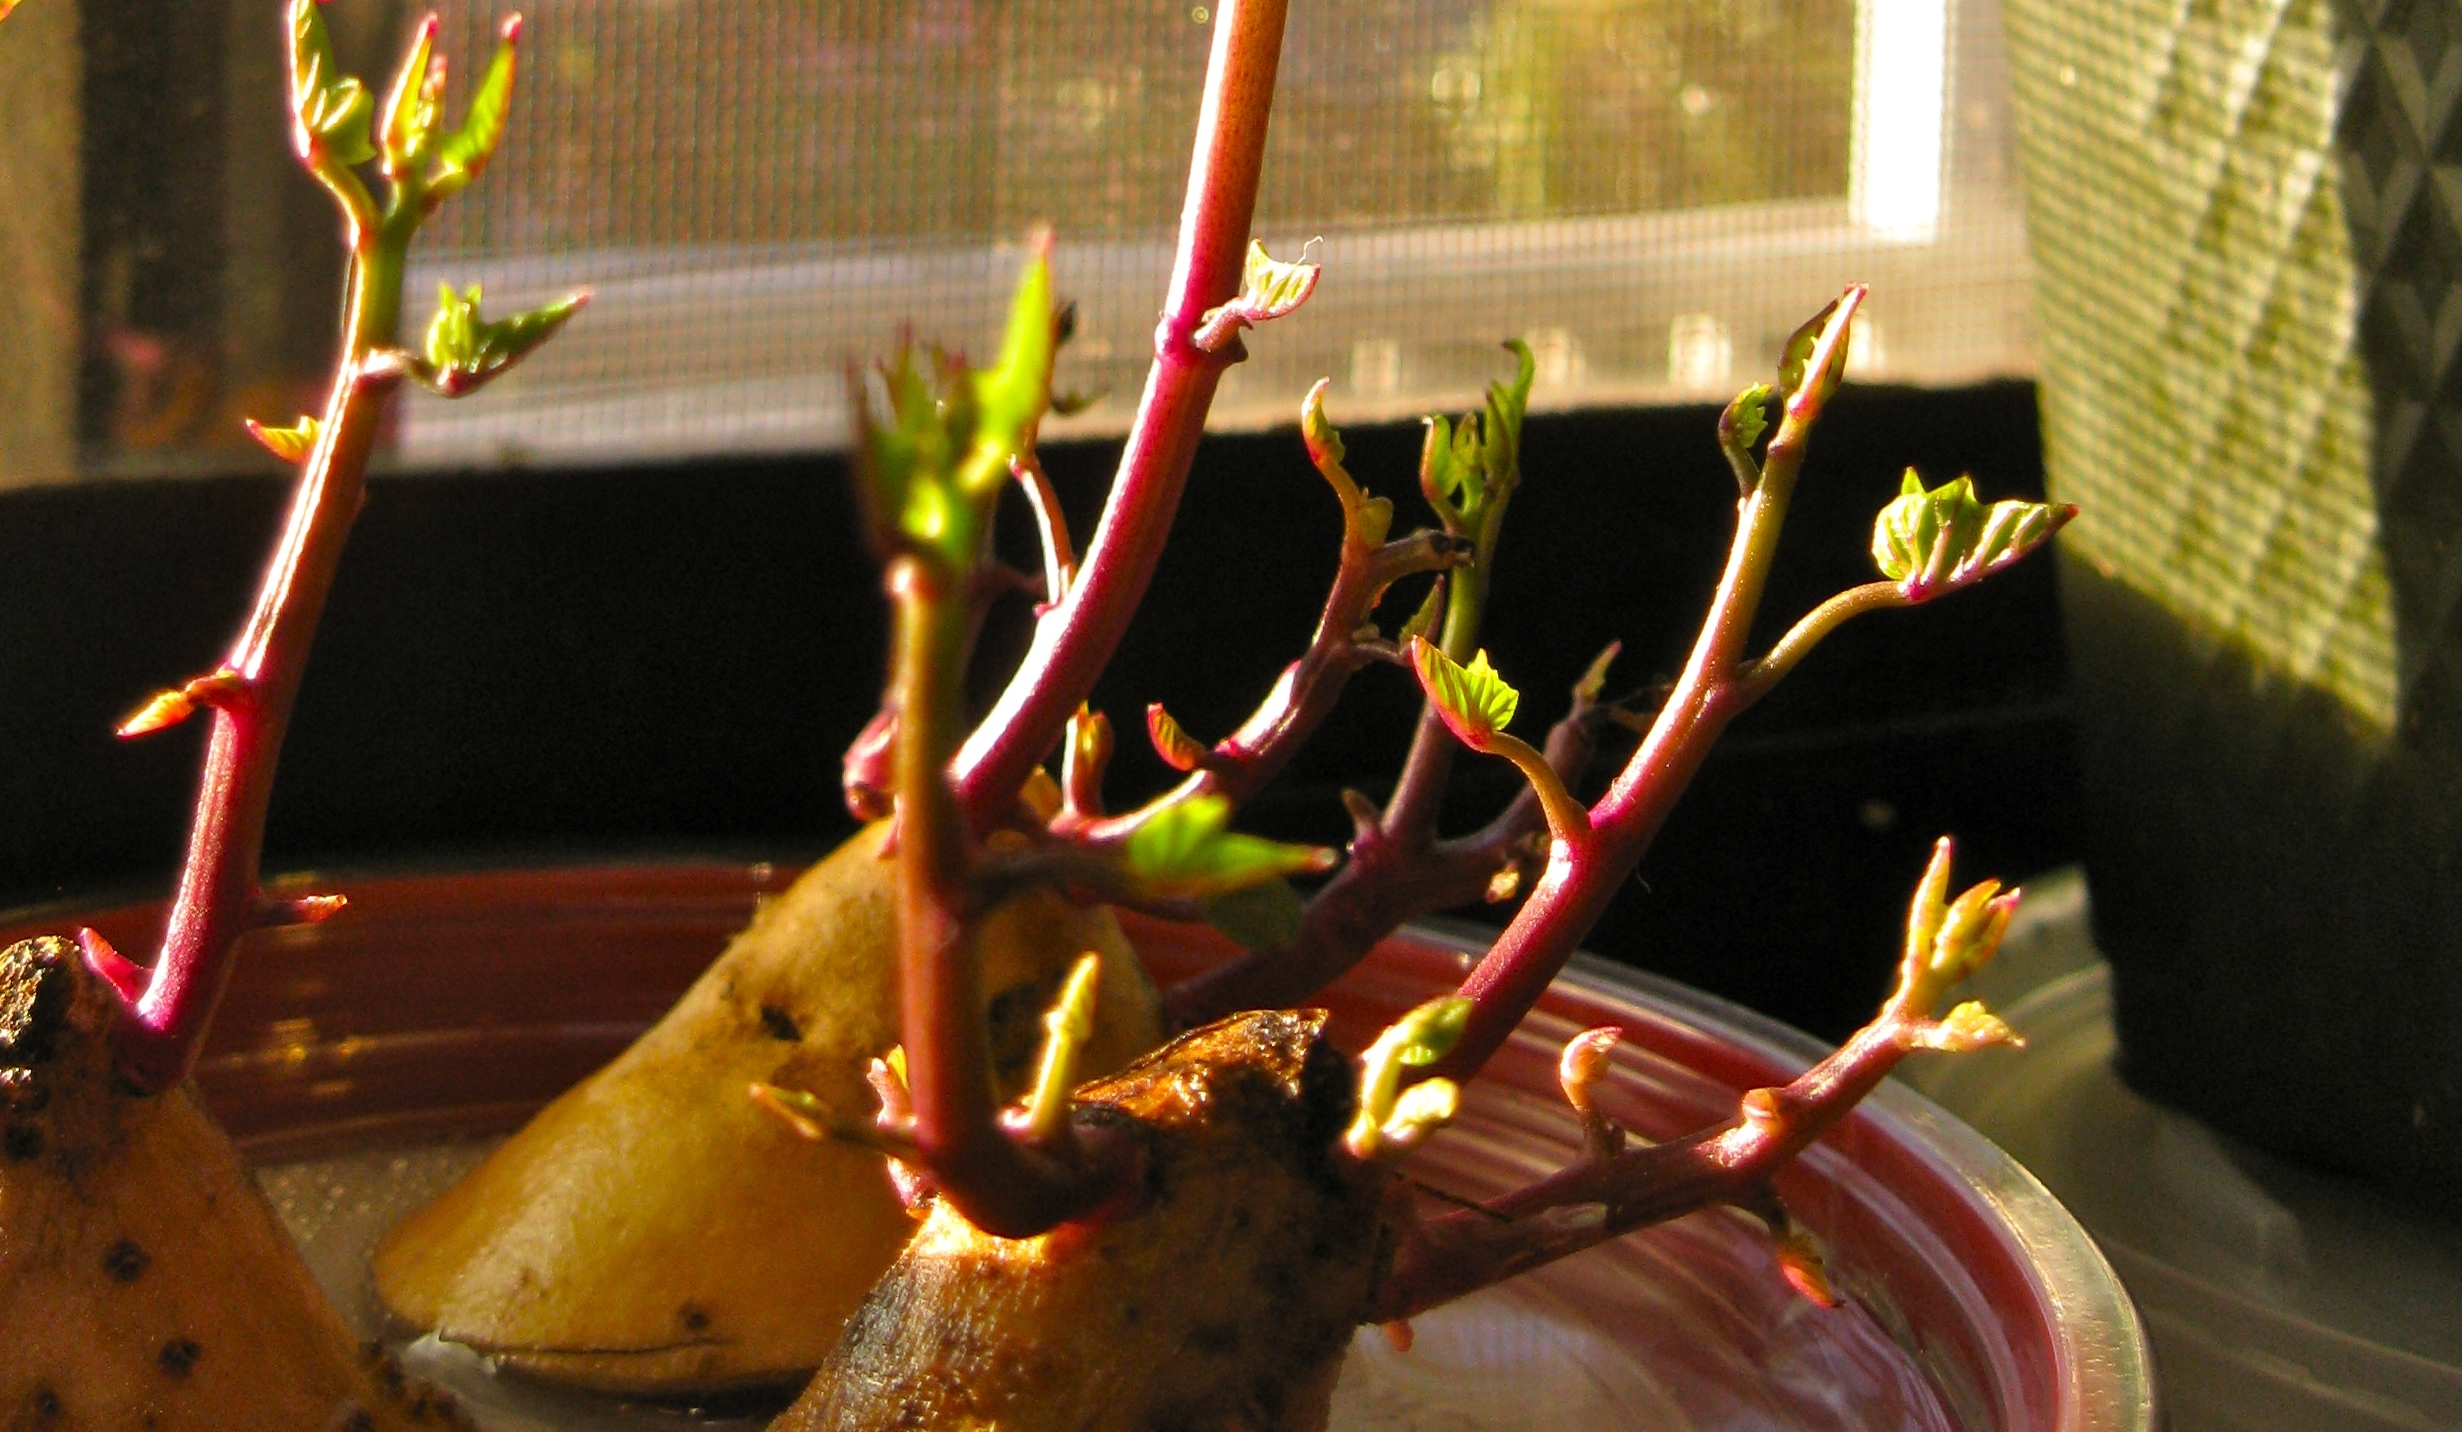 Sweet Potato Sprouts by Rosa Say/CC BY